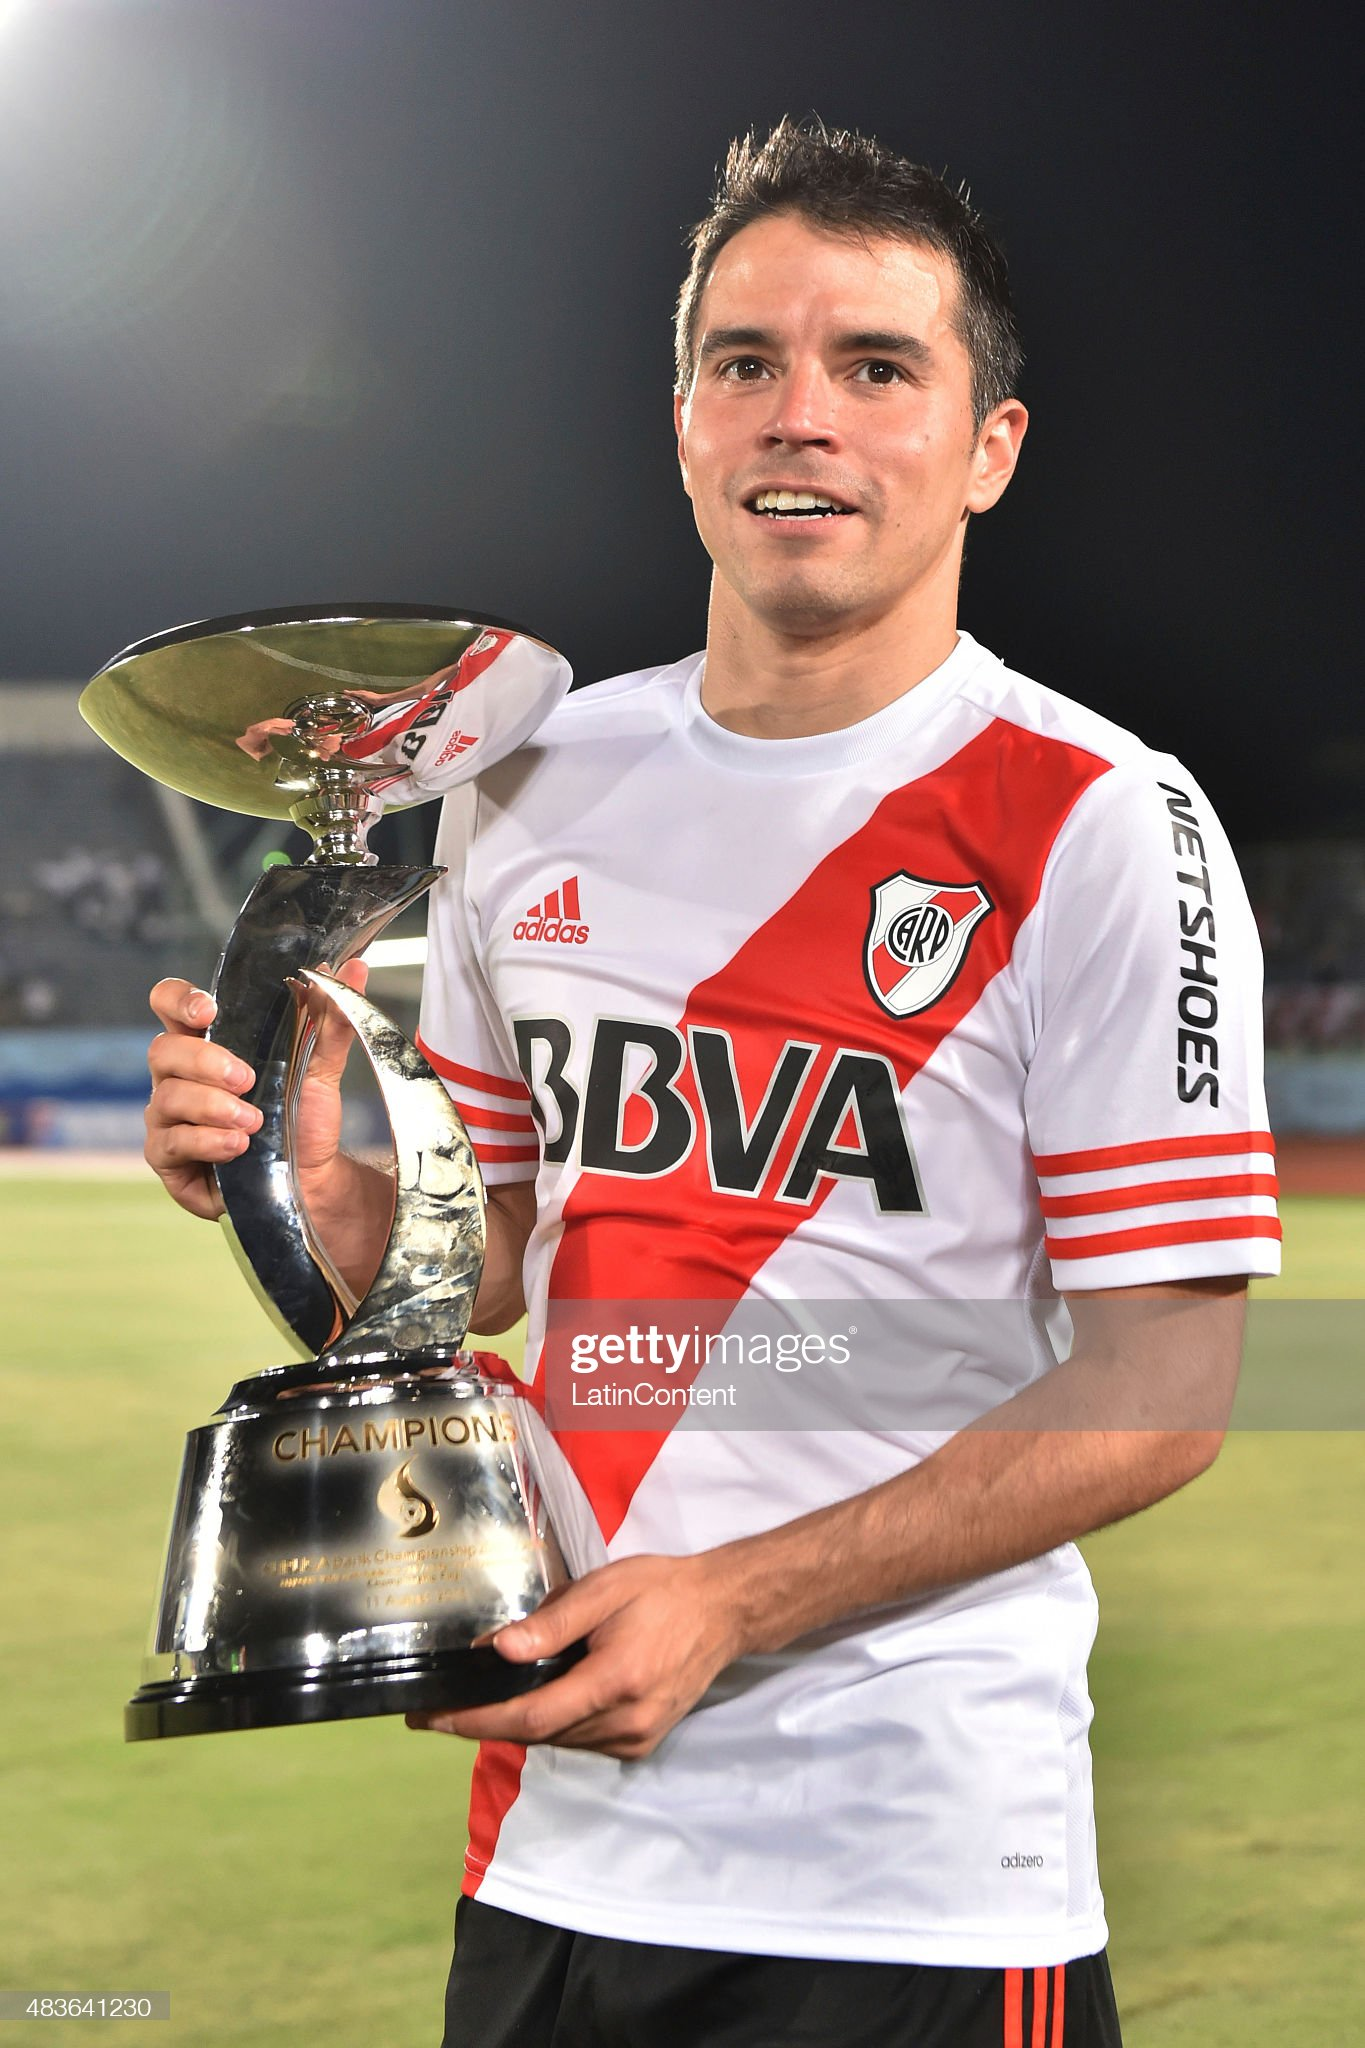 ¿Cuánto mide Javier Saviola? - Altura - Real height Javier-saviola-of-river-plate-poses-with-the-trophy-after-winning-a-picture-id483641230?s=2048x2048